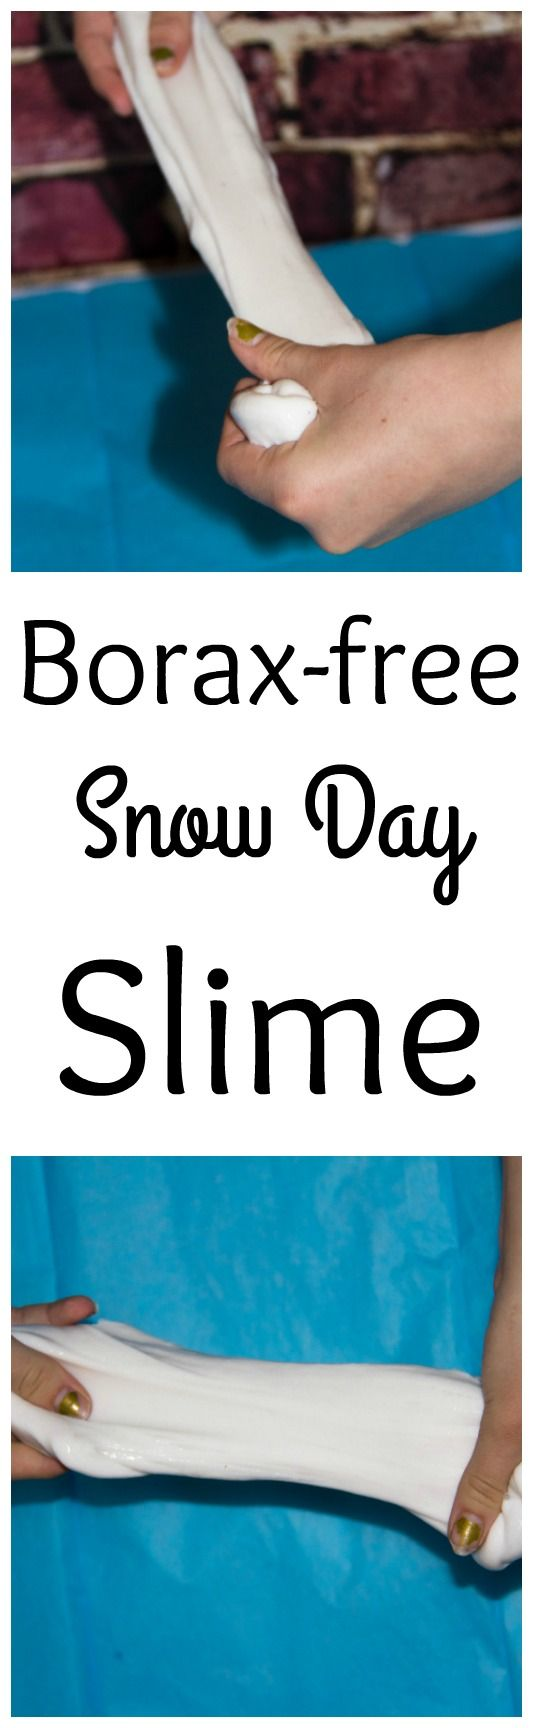 Want to make slime without Borax? This is a simple Borax free slime recipe that is great for a snow day or anytime. Kids love playing with slime.